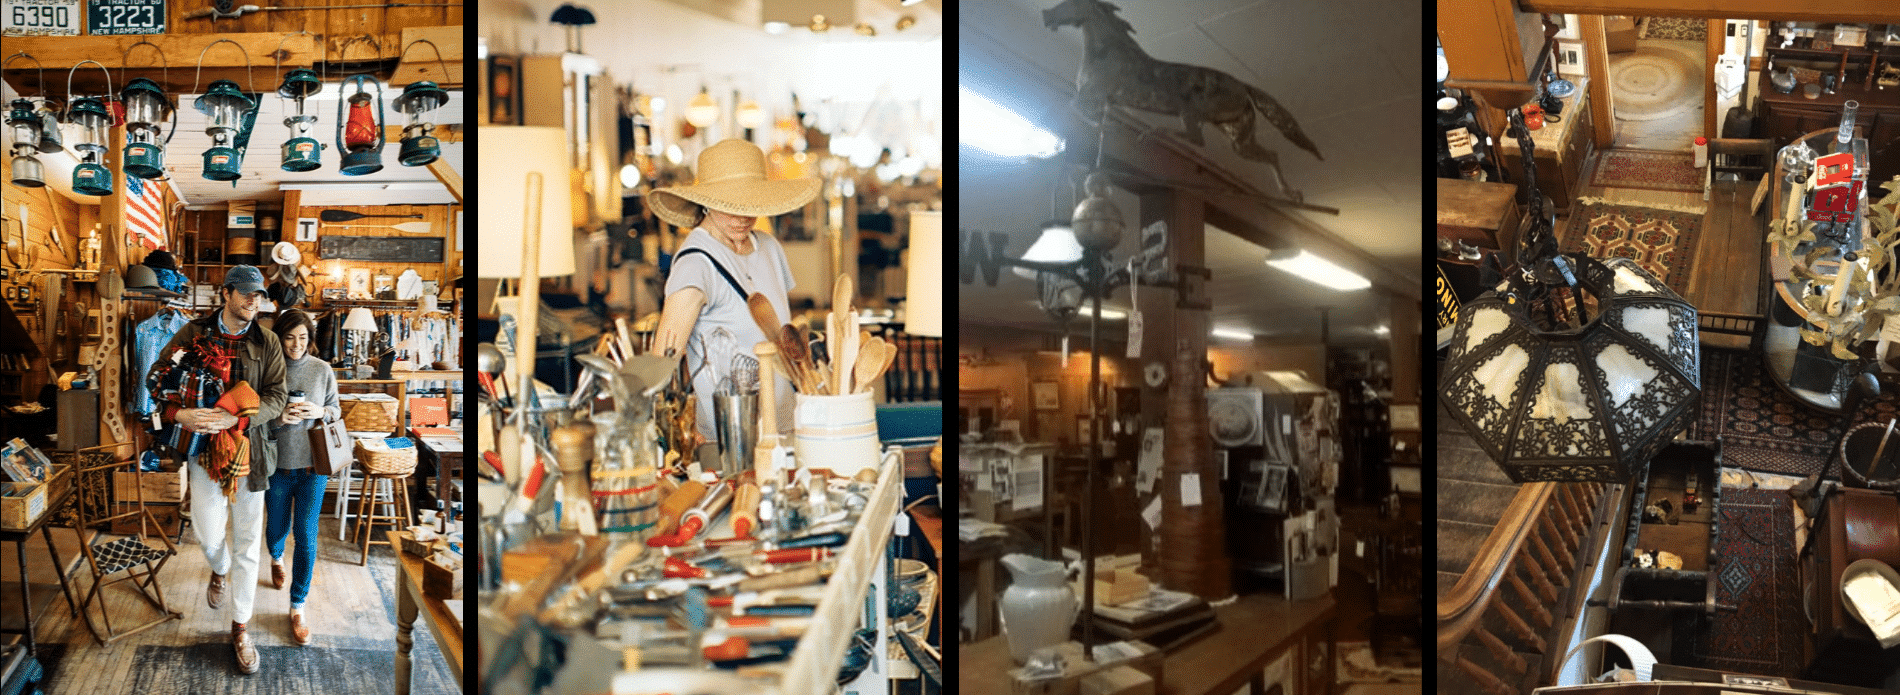 four images of people shopping in antique stores